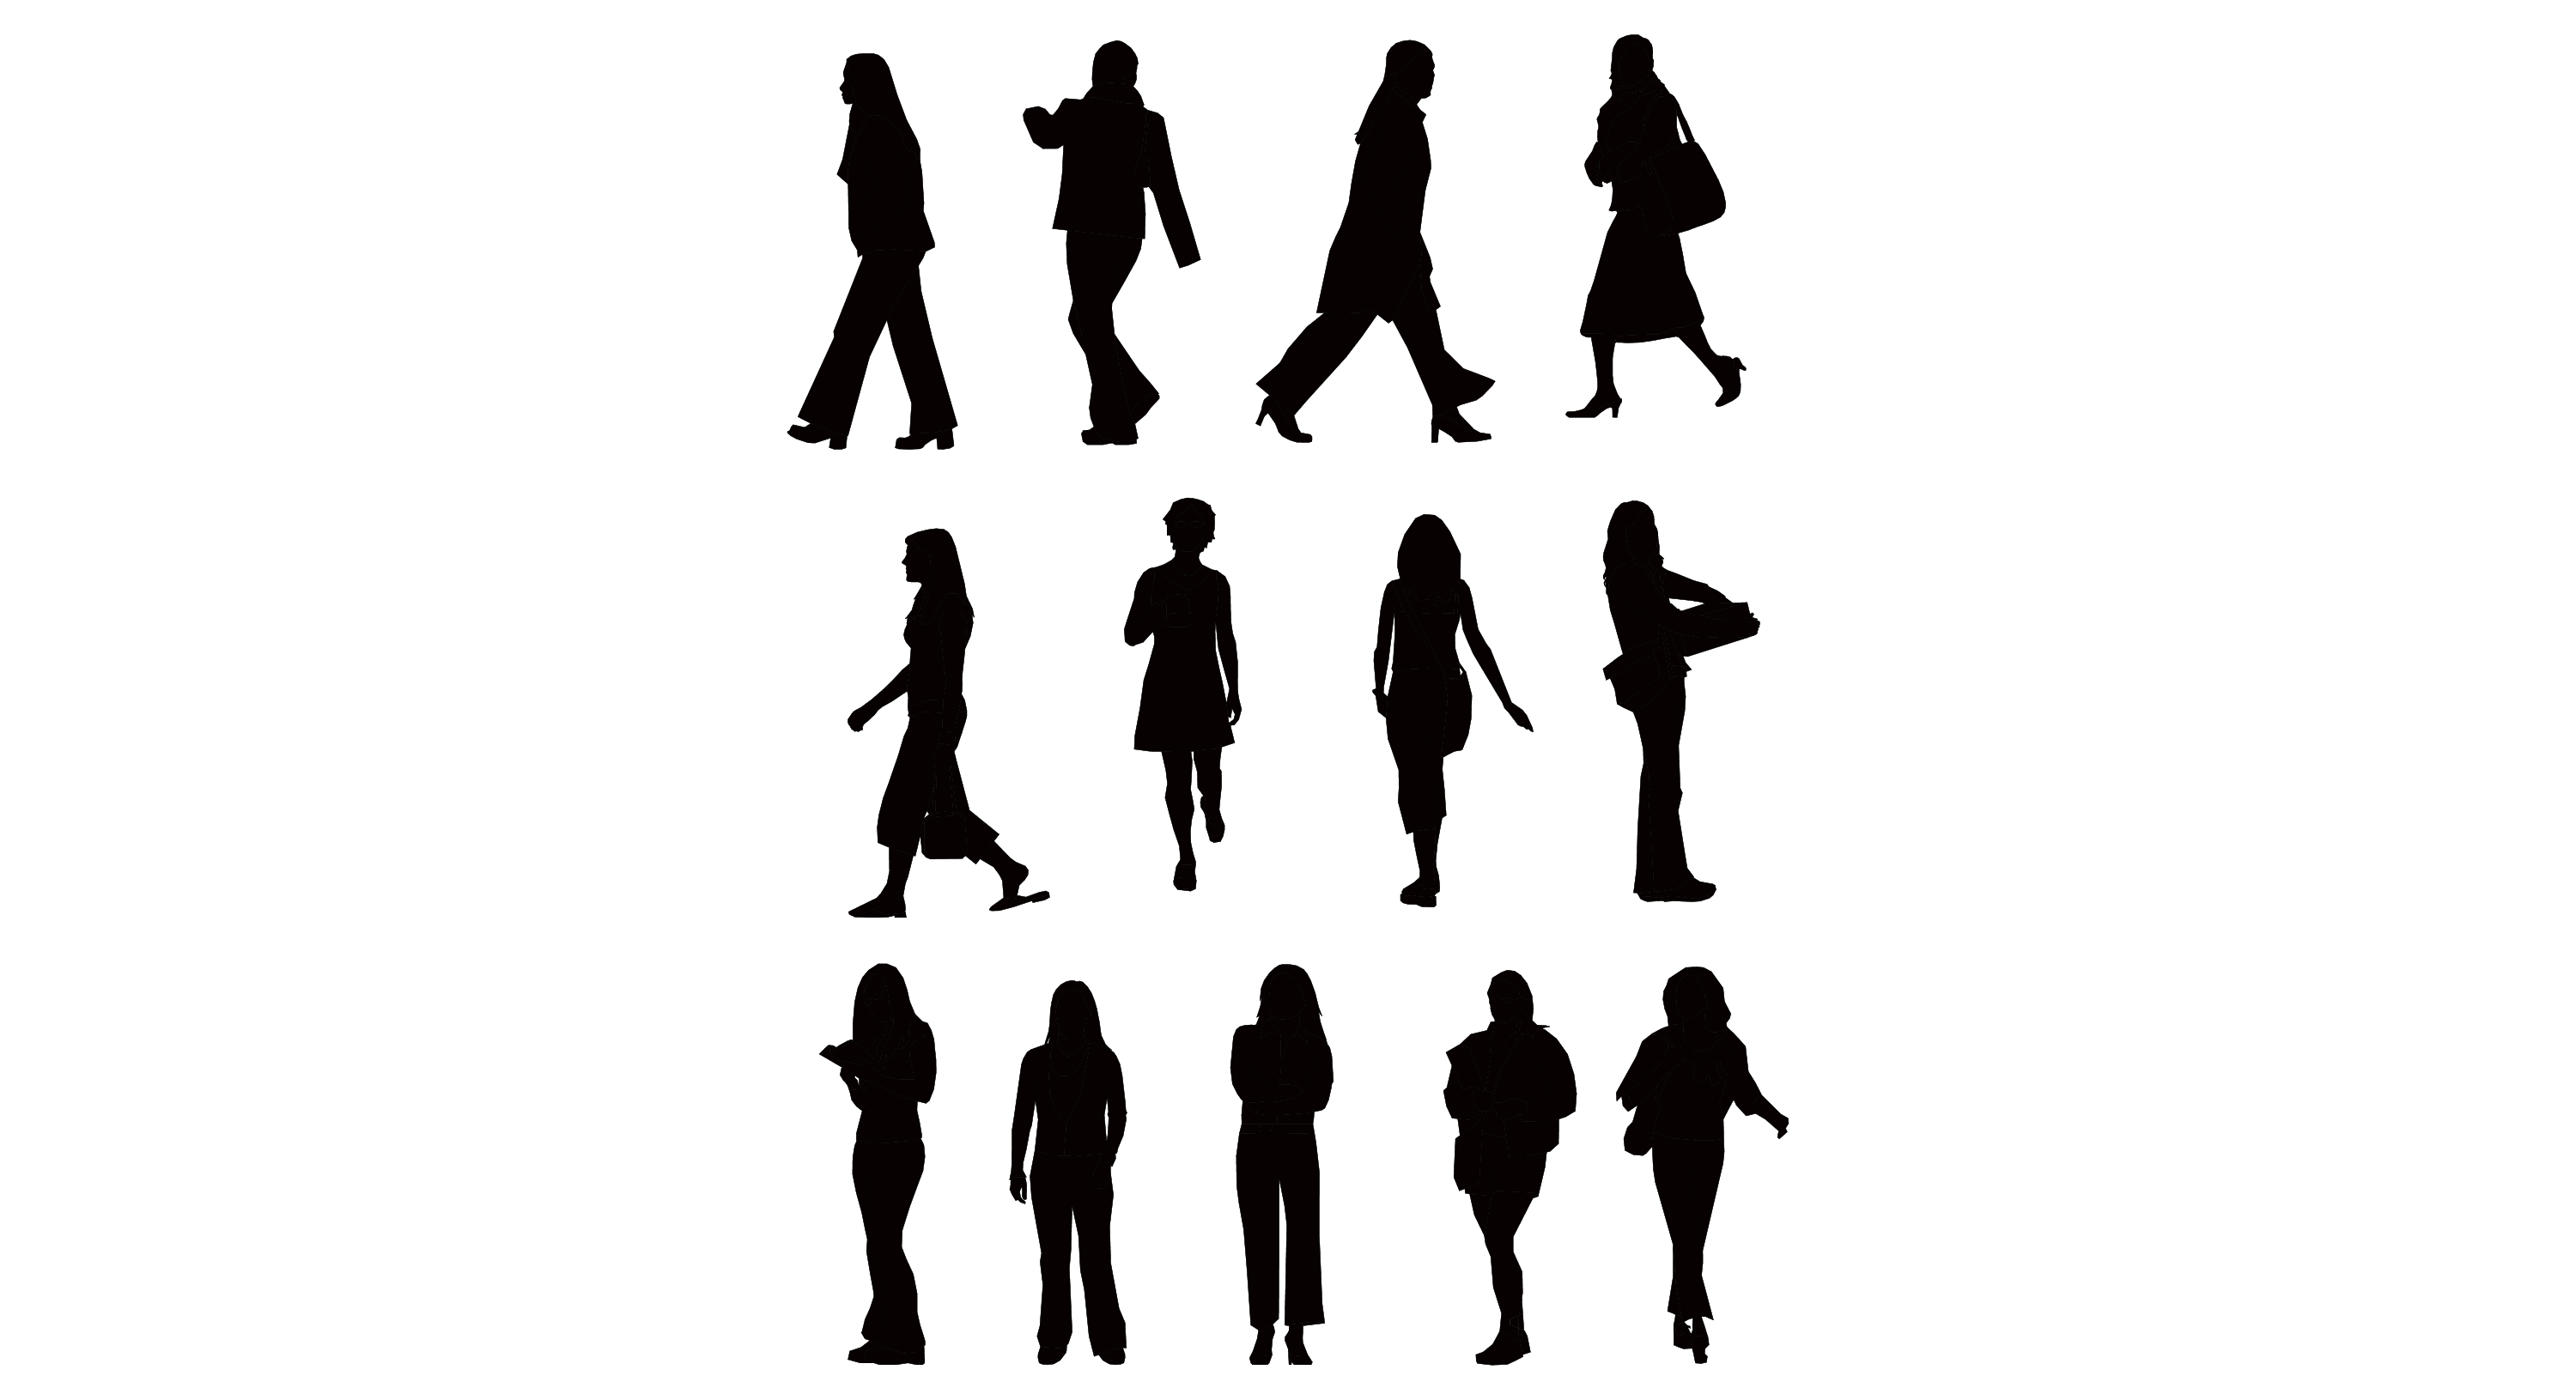 vector silhouette of people - photo #13